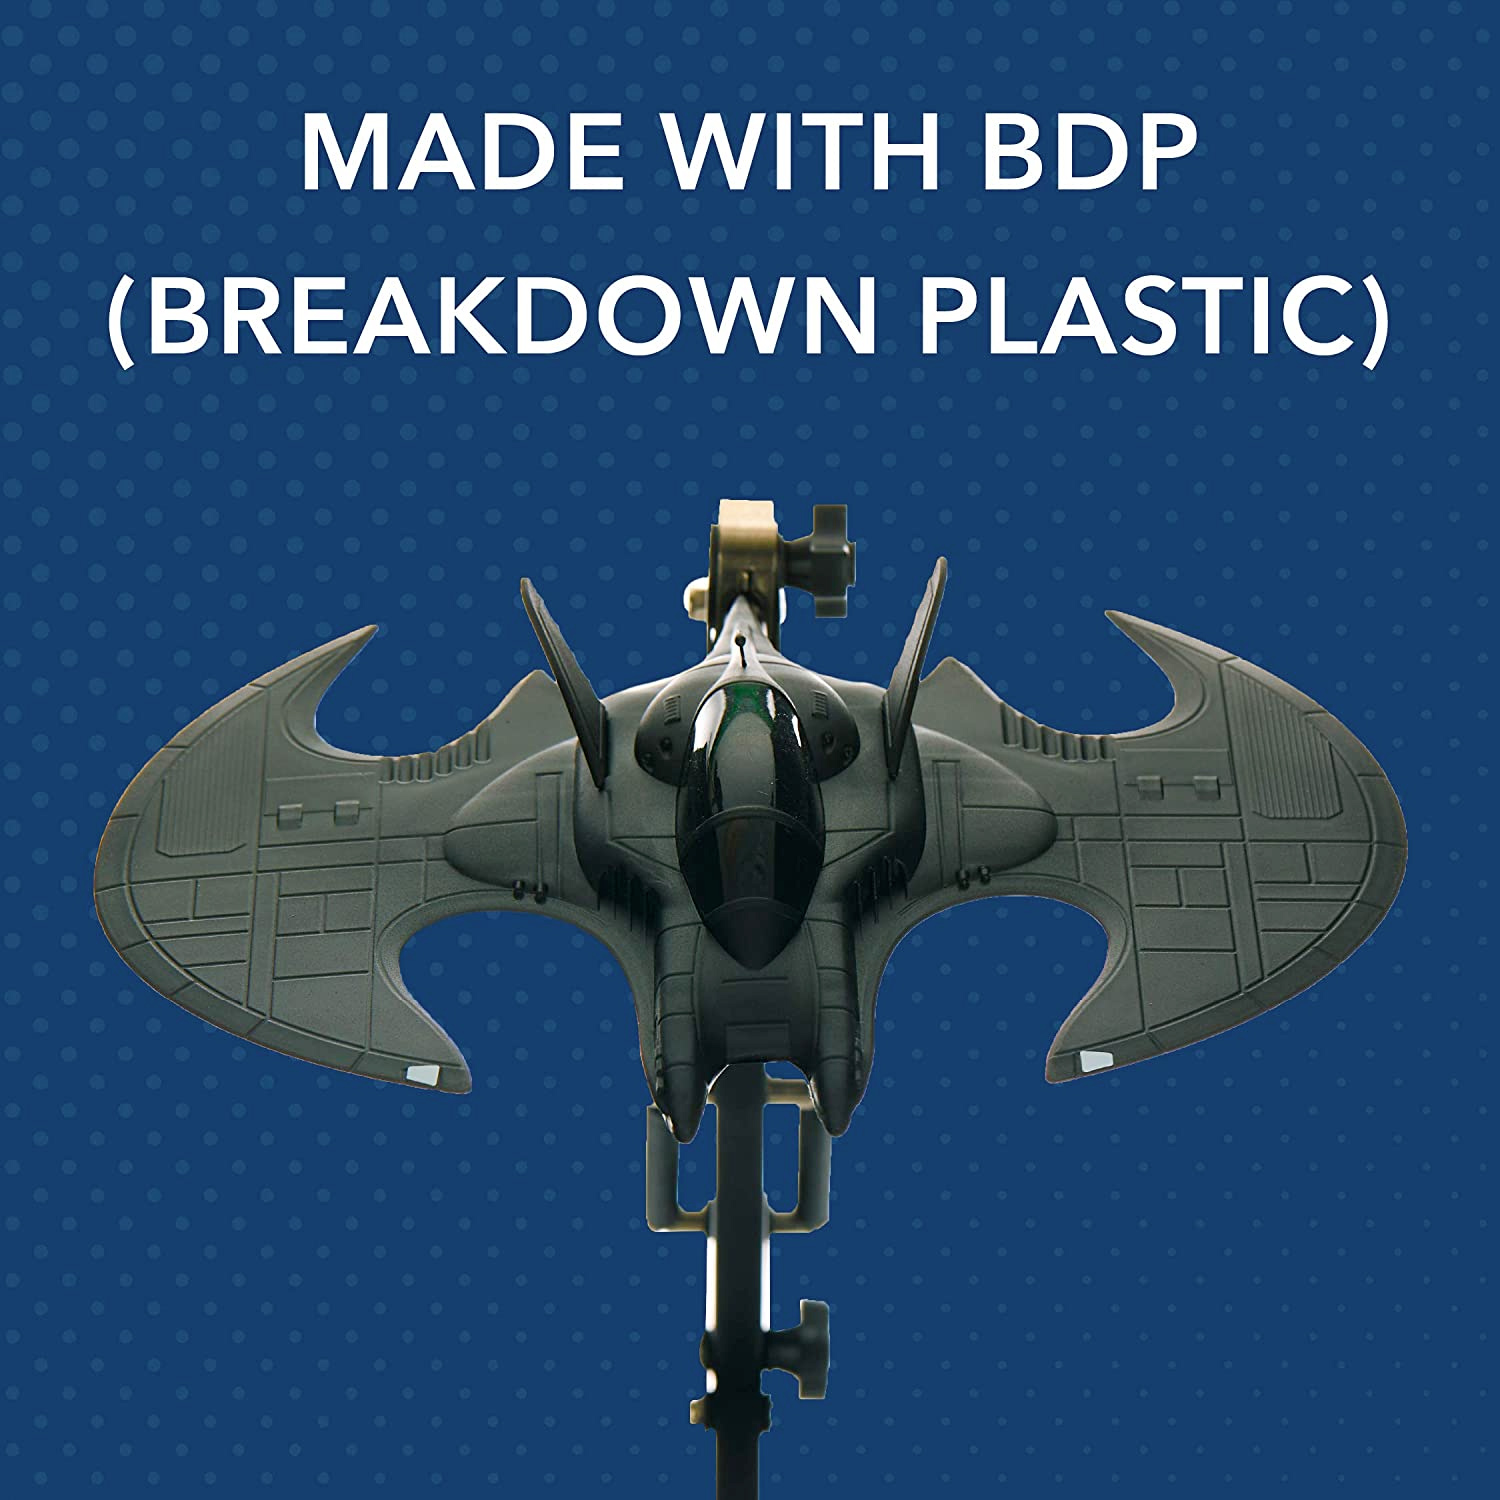 Batwing Posable Batman Desk Light